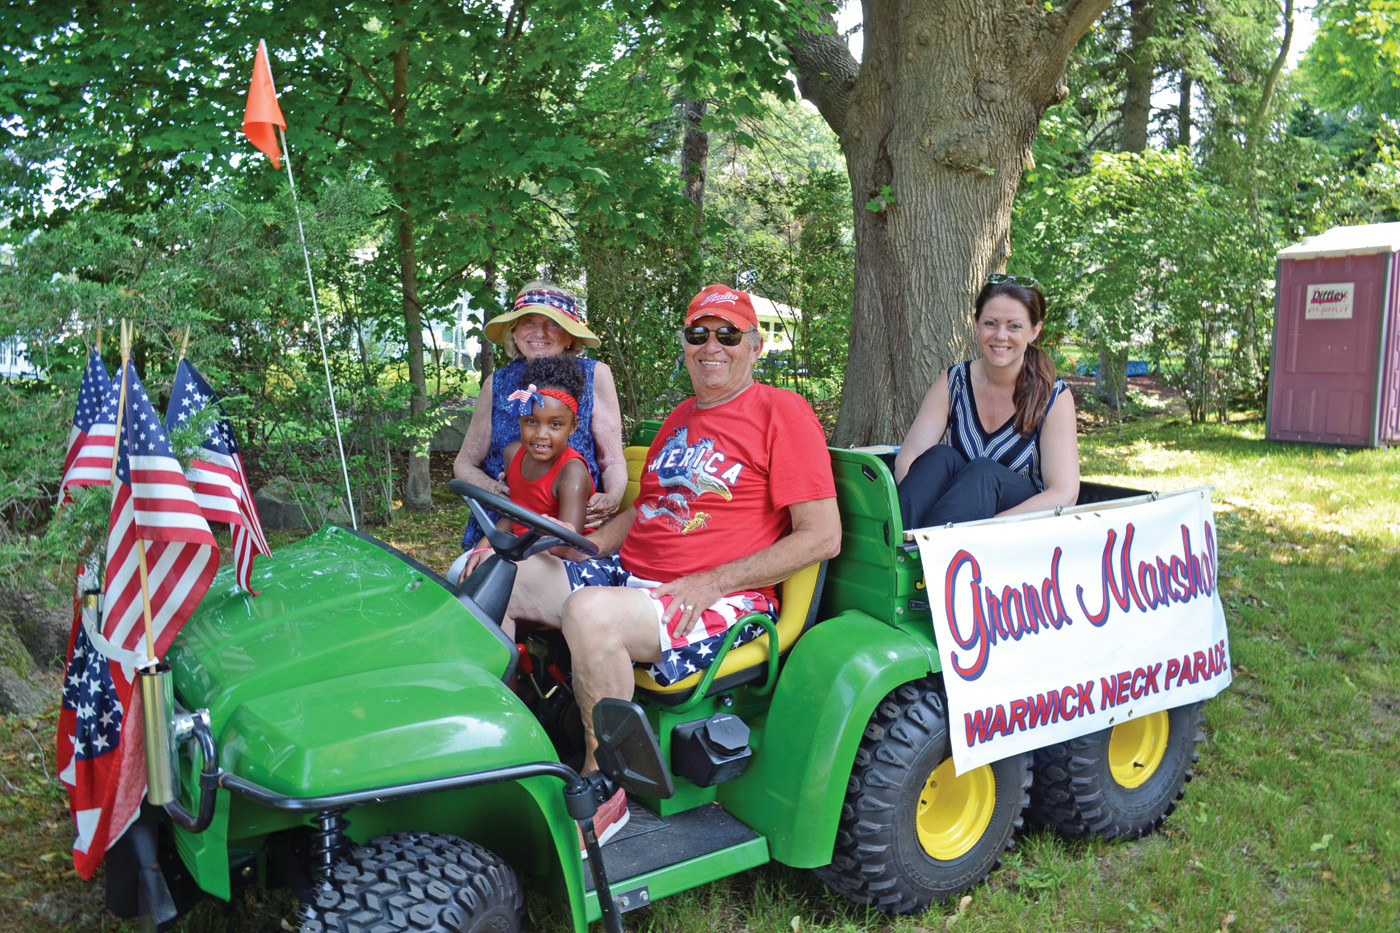 LEADING THE WAY: Parade Grand Marshal Leo Scansaroli, along with his wife Judy and daughter Michelle, weren't exactly sure why they got the nod to lead the parade this year, but were very grateful for the honor.